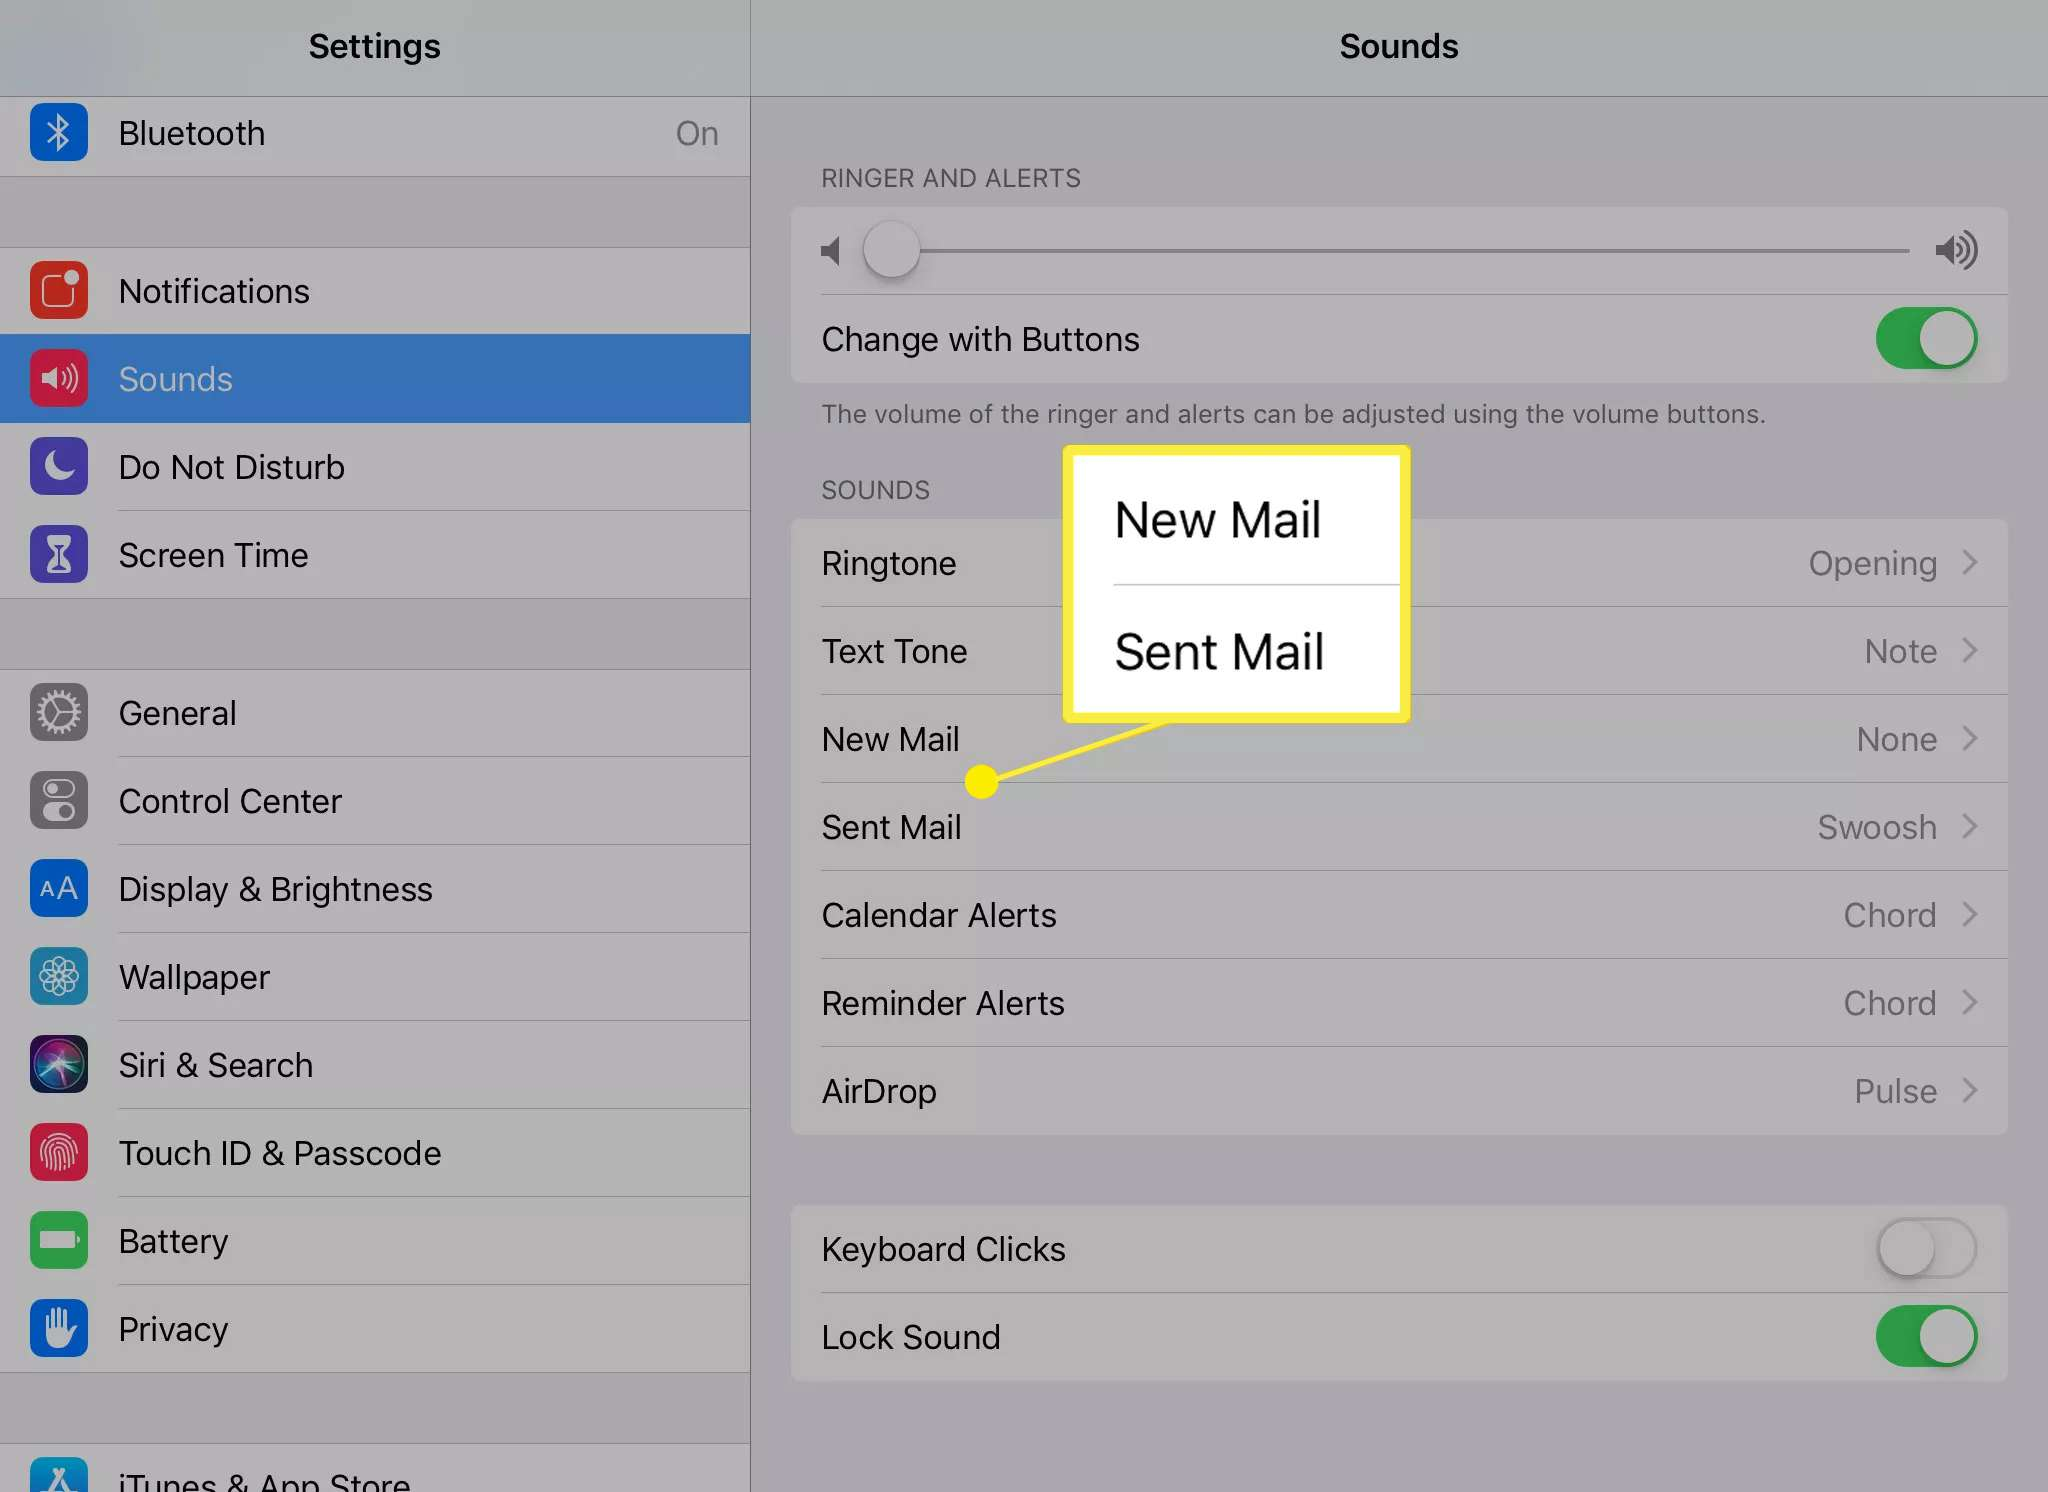 Sound settings for New Mail and Sent Mail on iPad